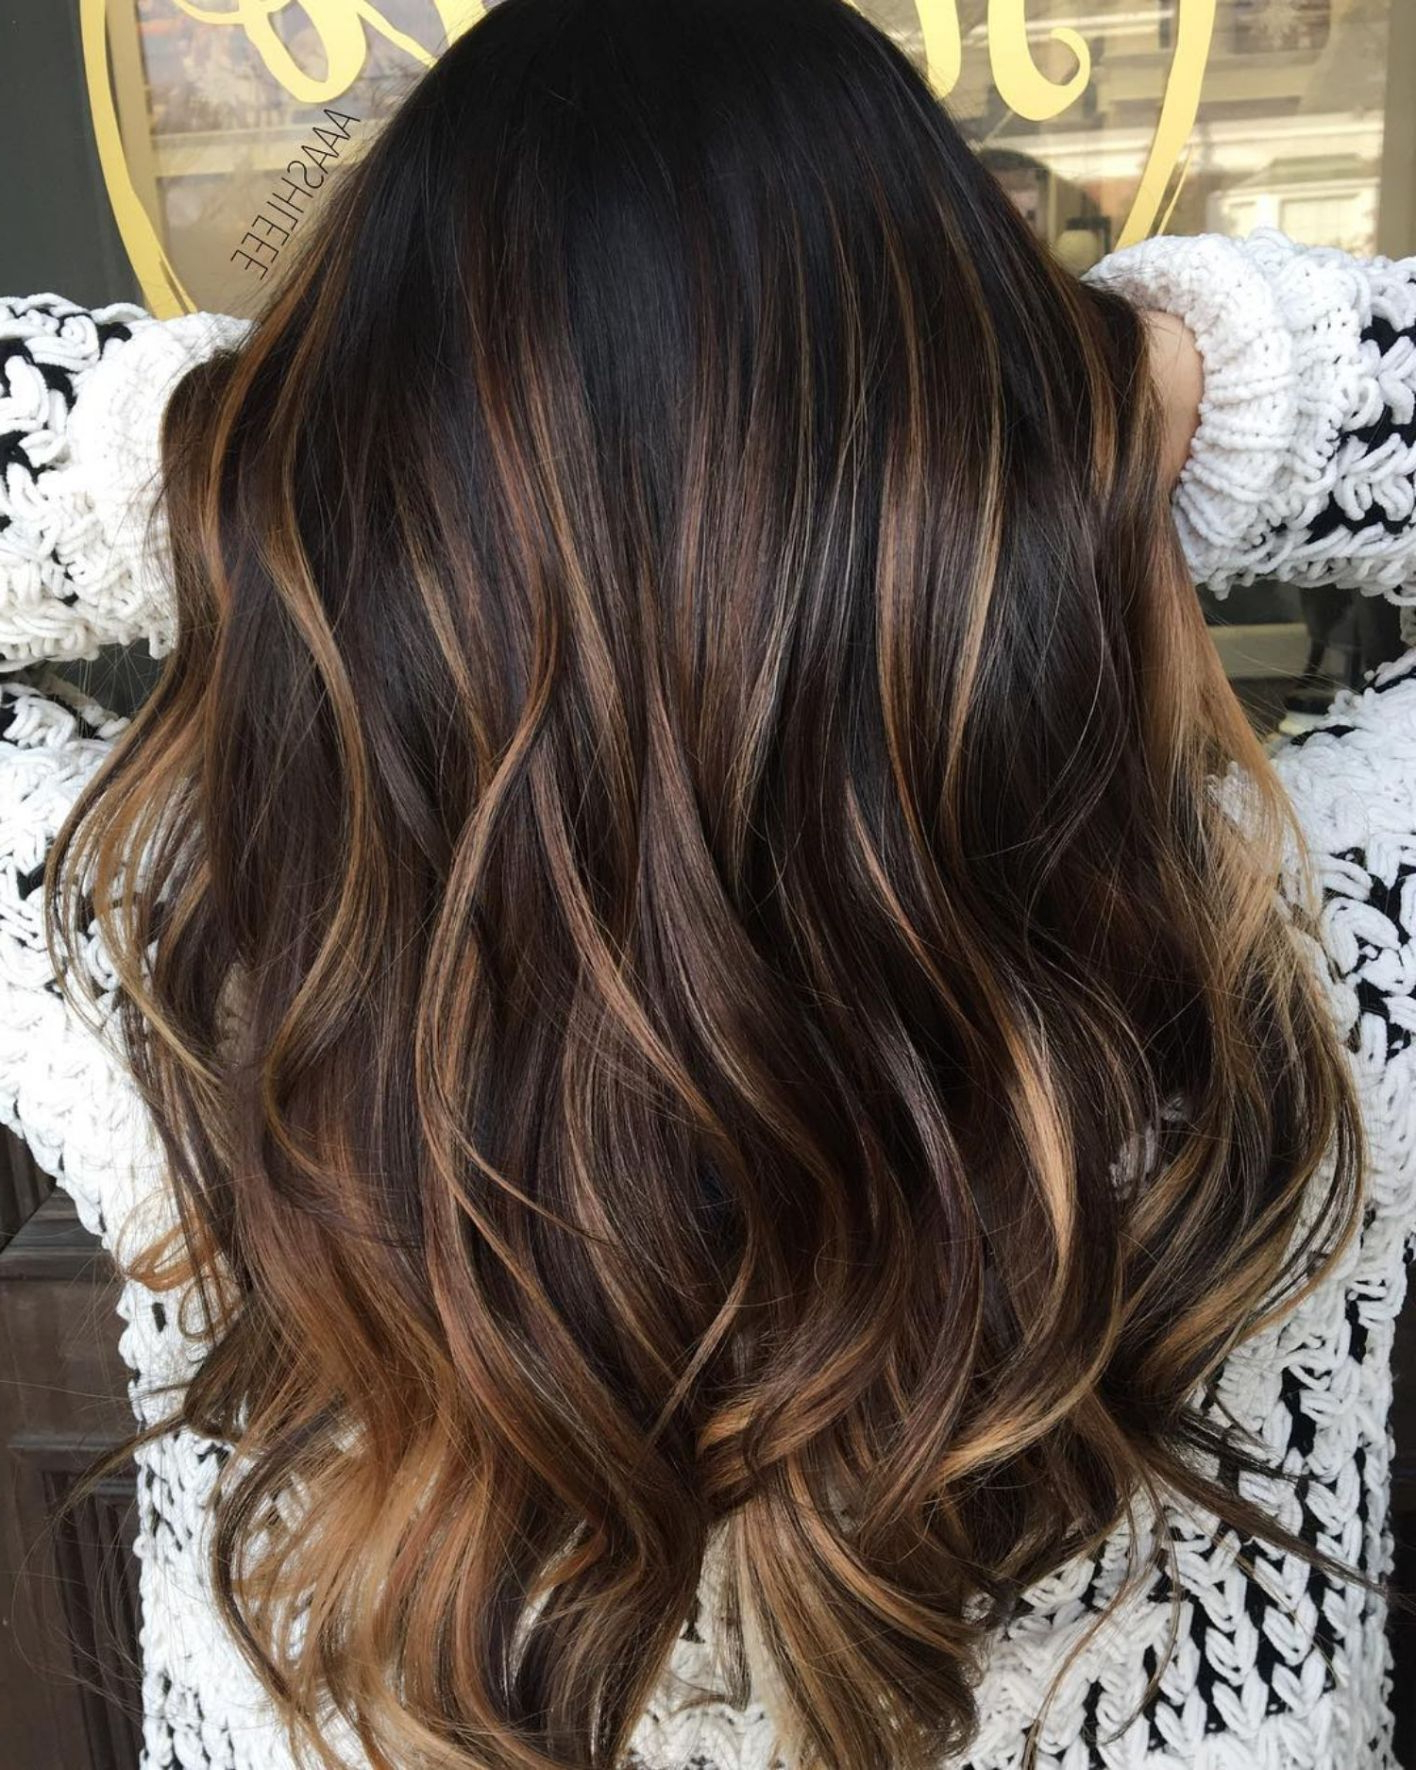 Famous Natural Curls Hairstyles With Caramel Highlights Throughout 60 Hairstyles Featuring Dark Brown Hair With Highlights (View 5 of 20)